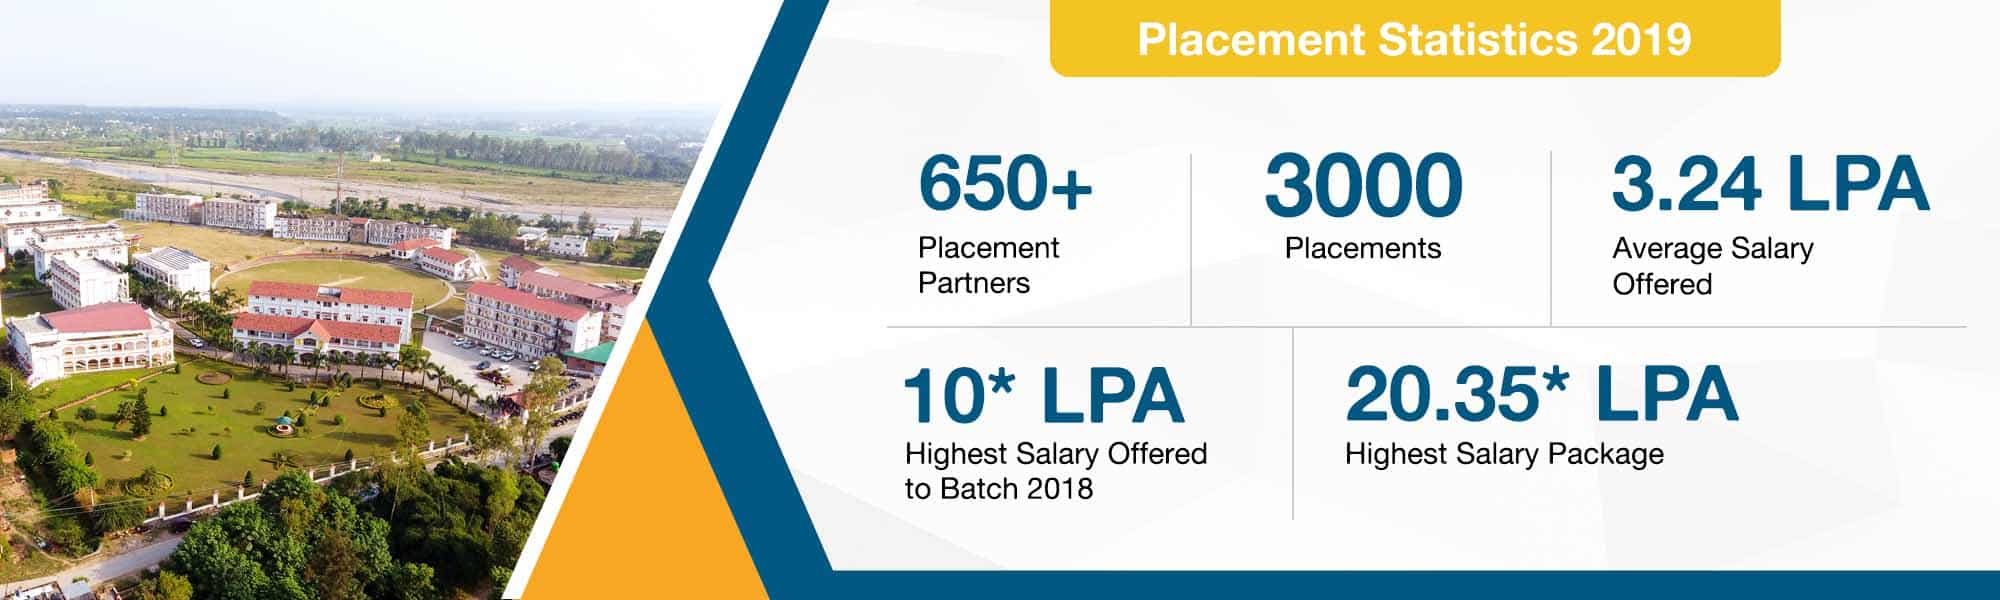 Tula's Institute offers excellent placement opportunities in MNCs